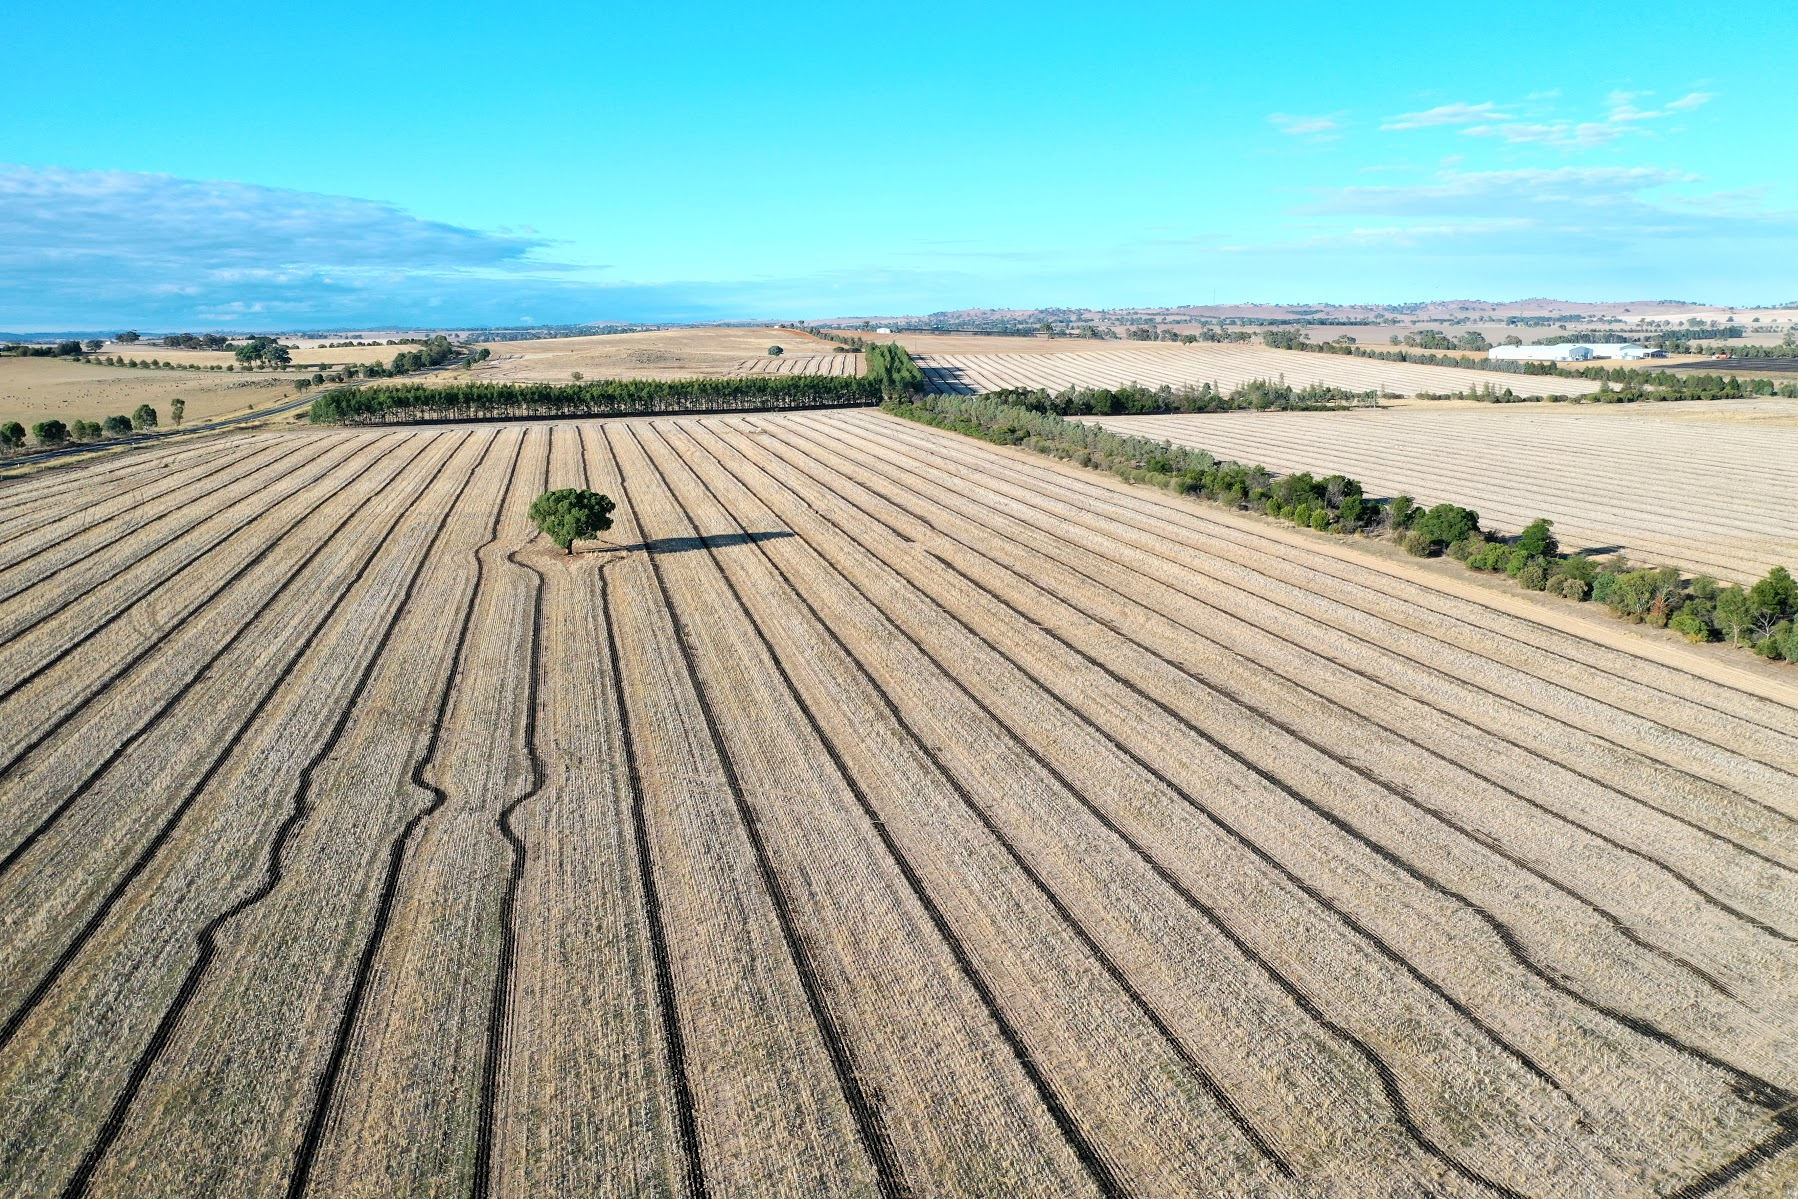 Aerial view showing cropping lines and brown paddocks rimmed with trees